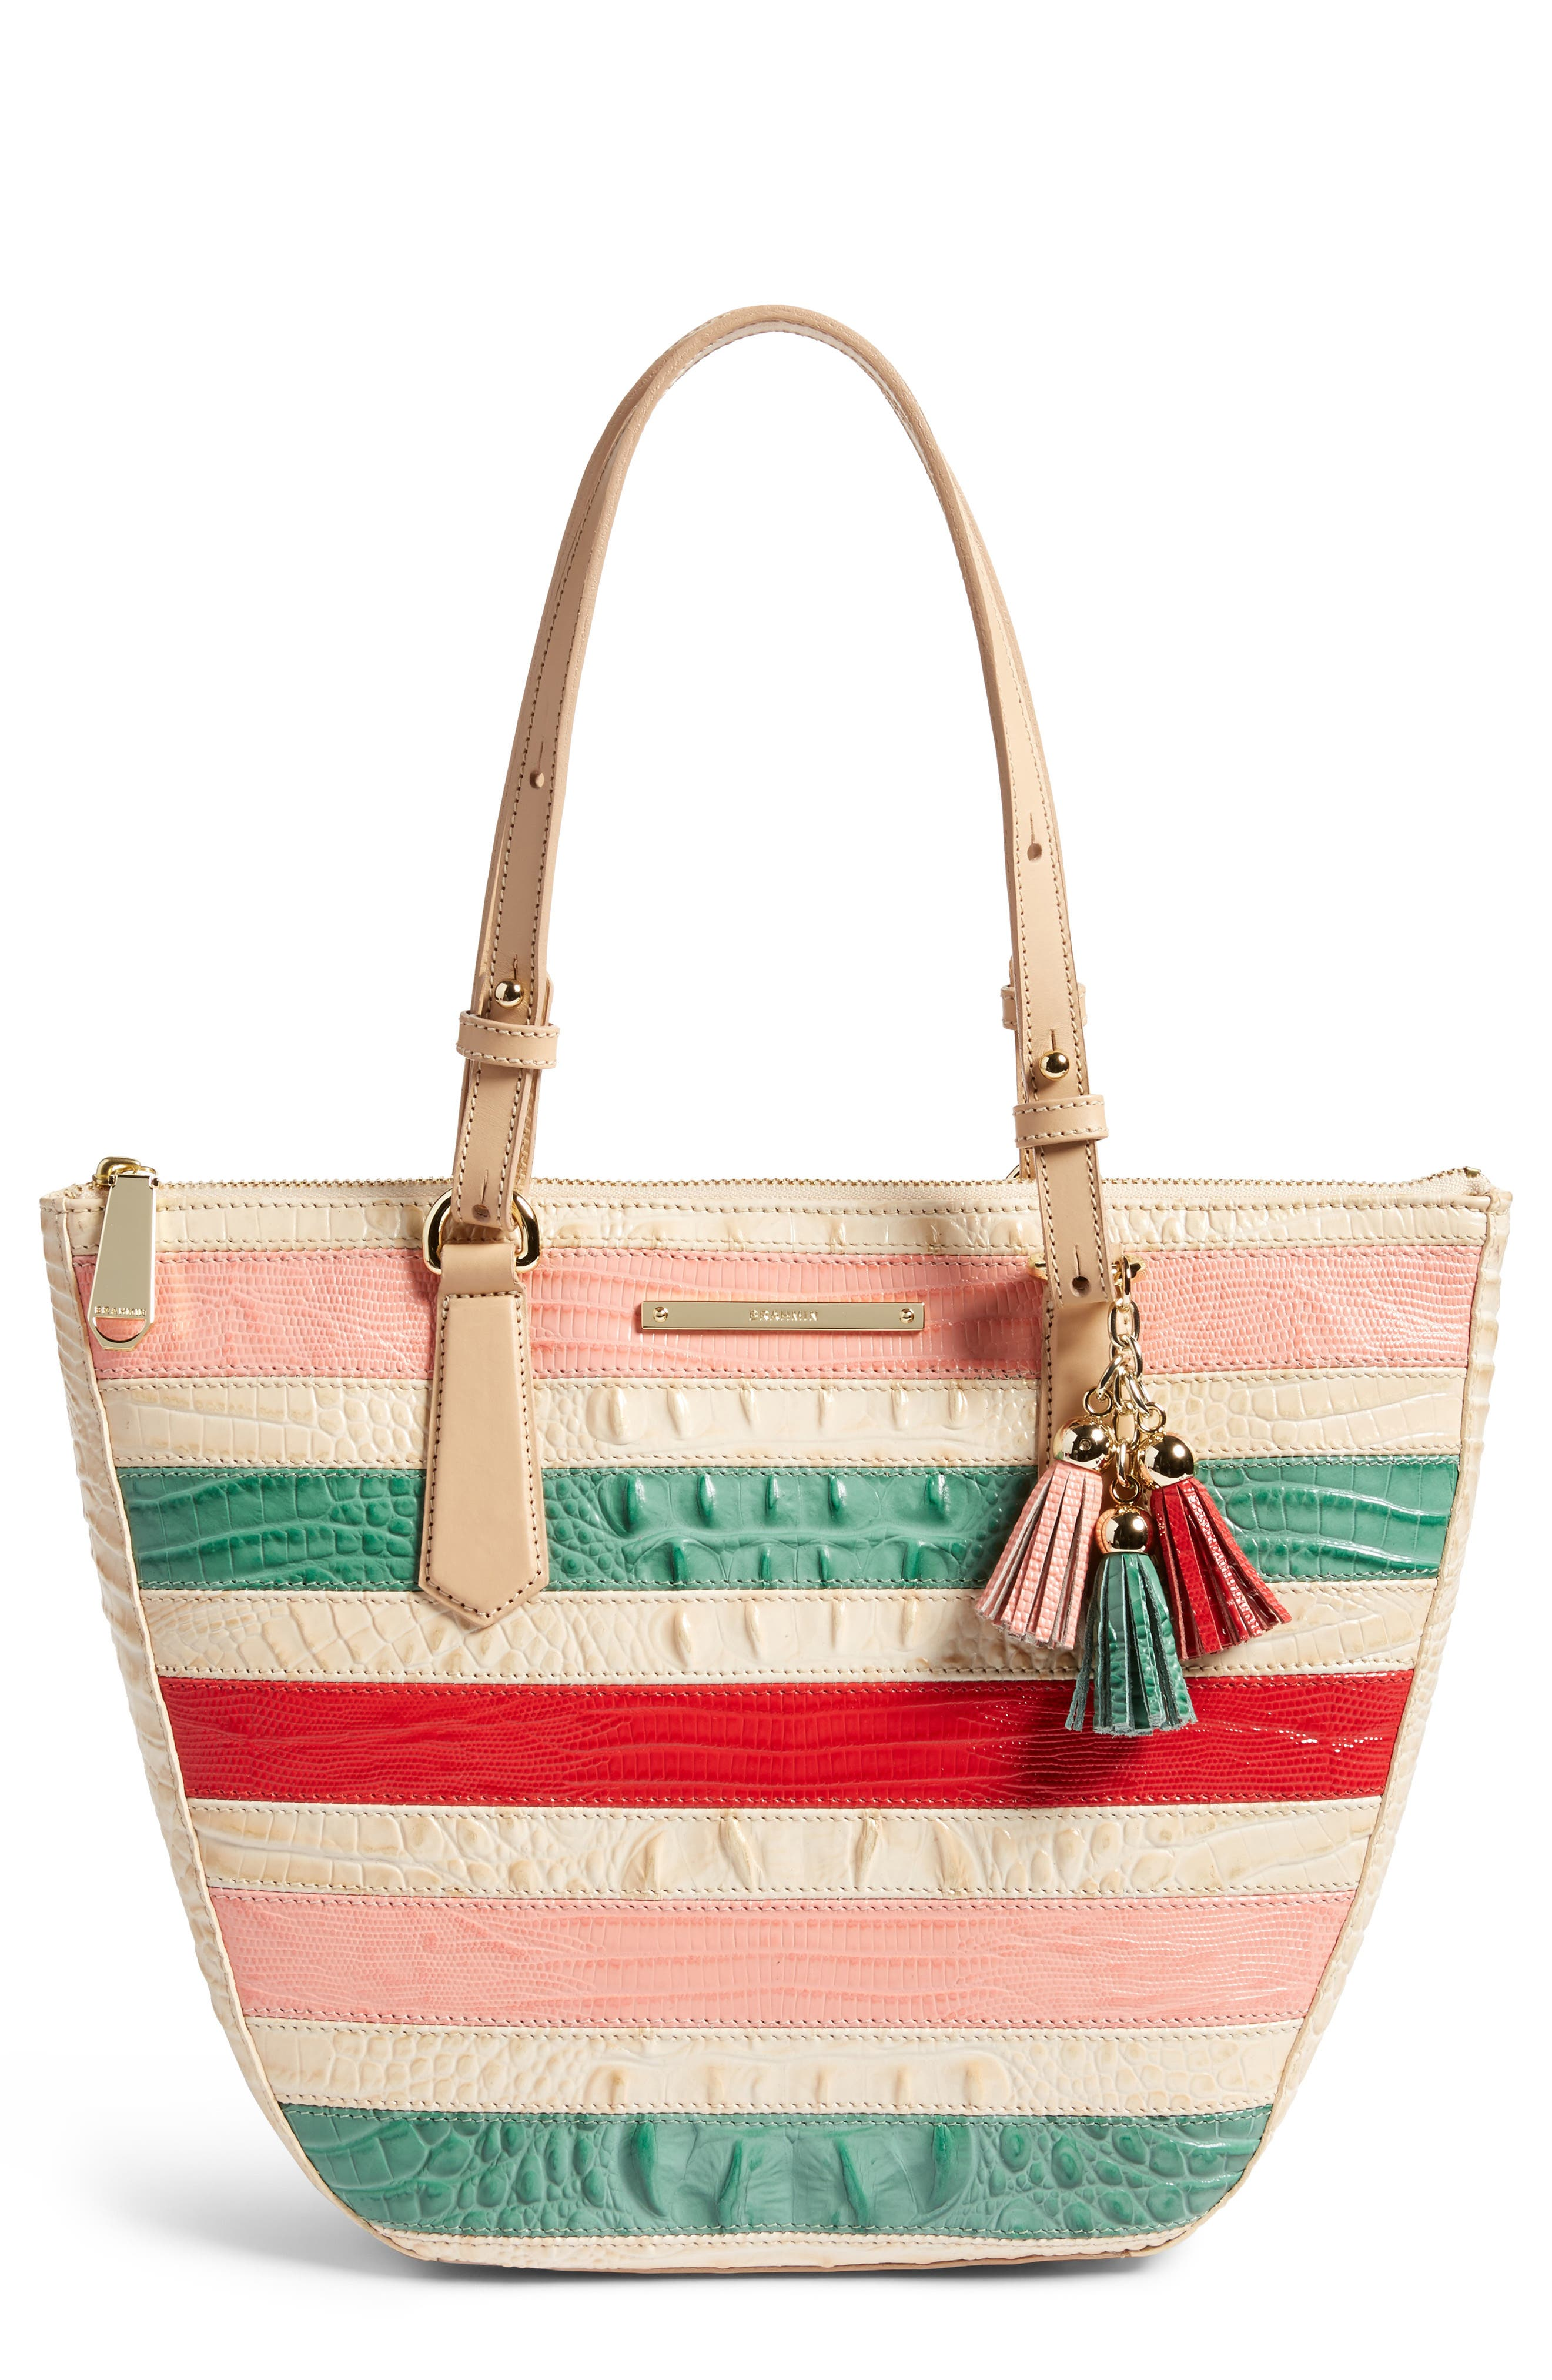 Brahmin Small Willa Croc Embossed Leather Tote